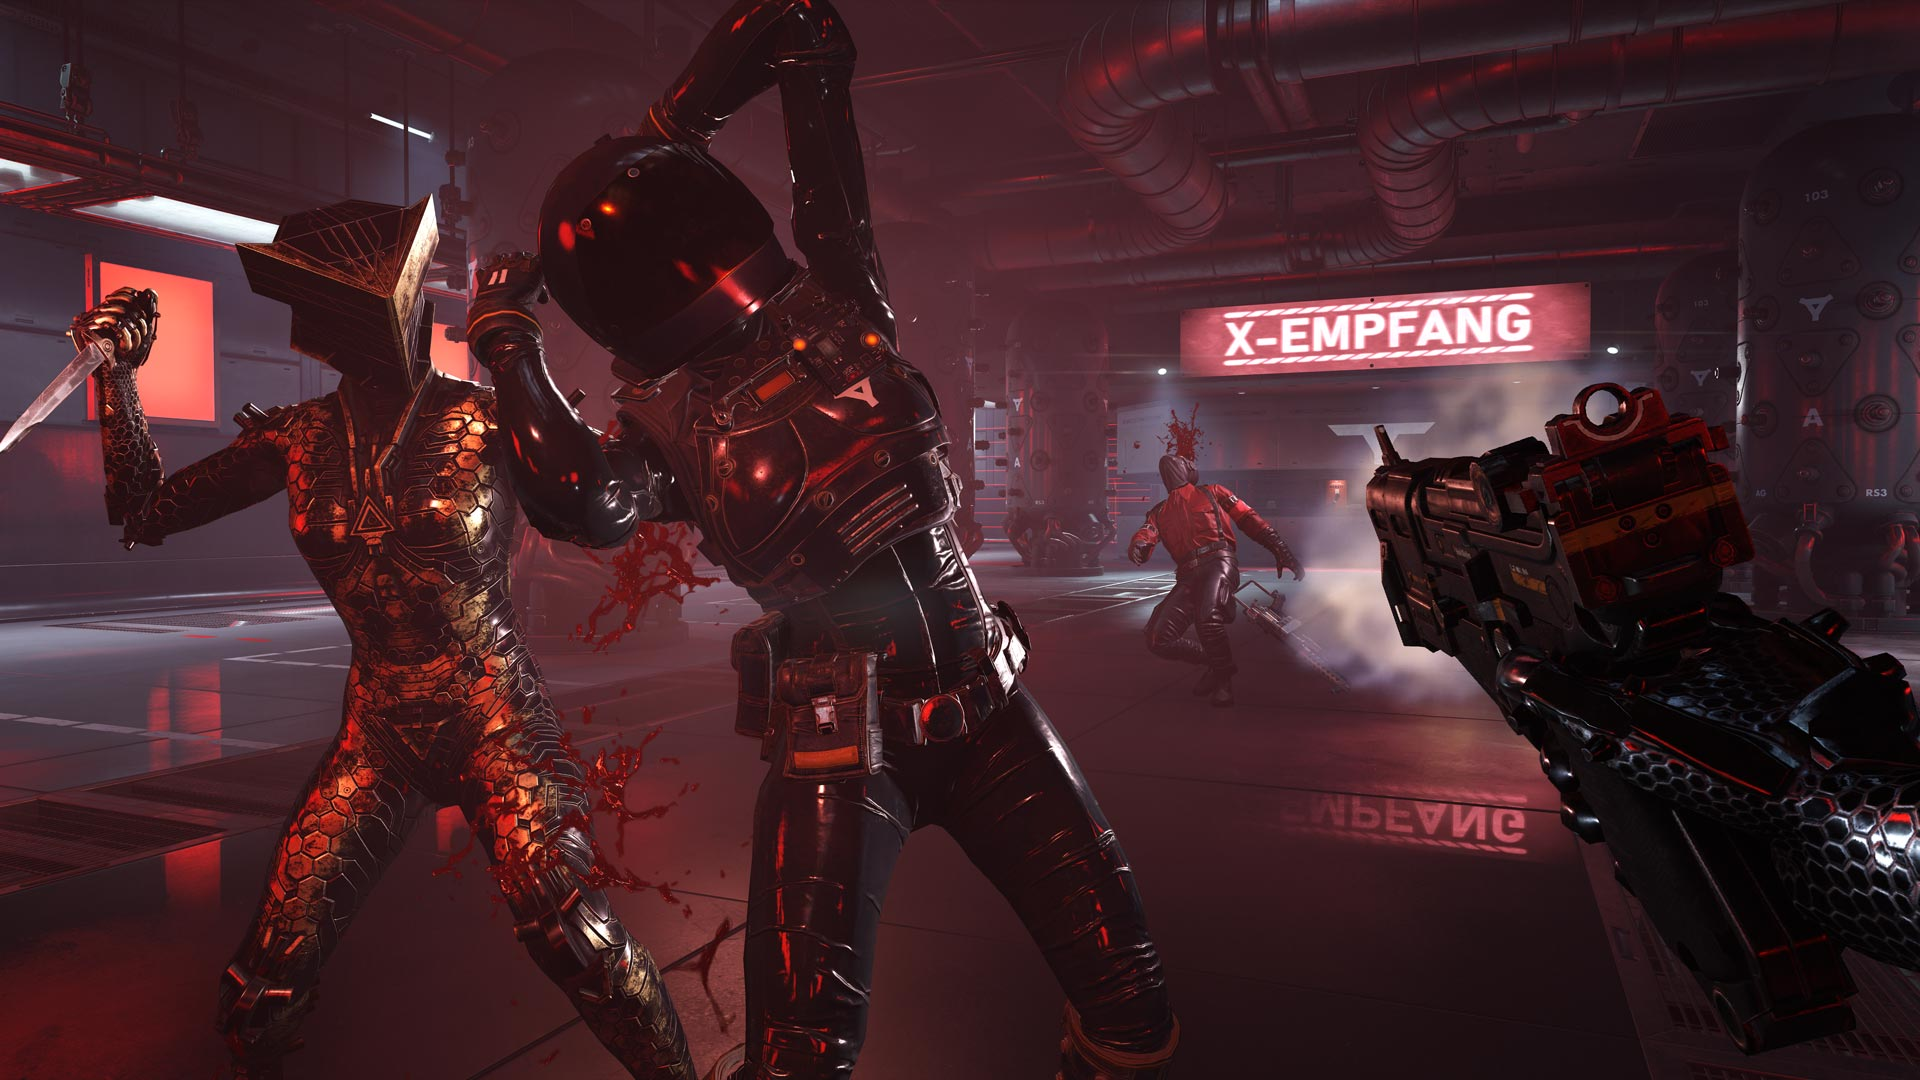 One of the sister's stabs an enemy in the back in Wolfenstein: Youngblood.